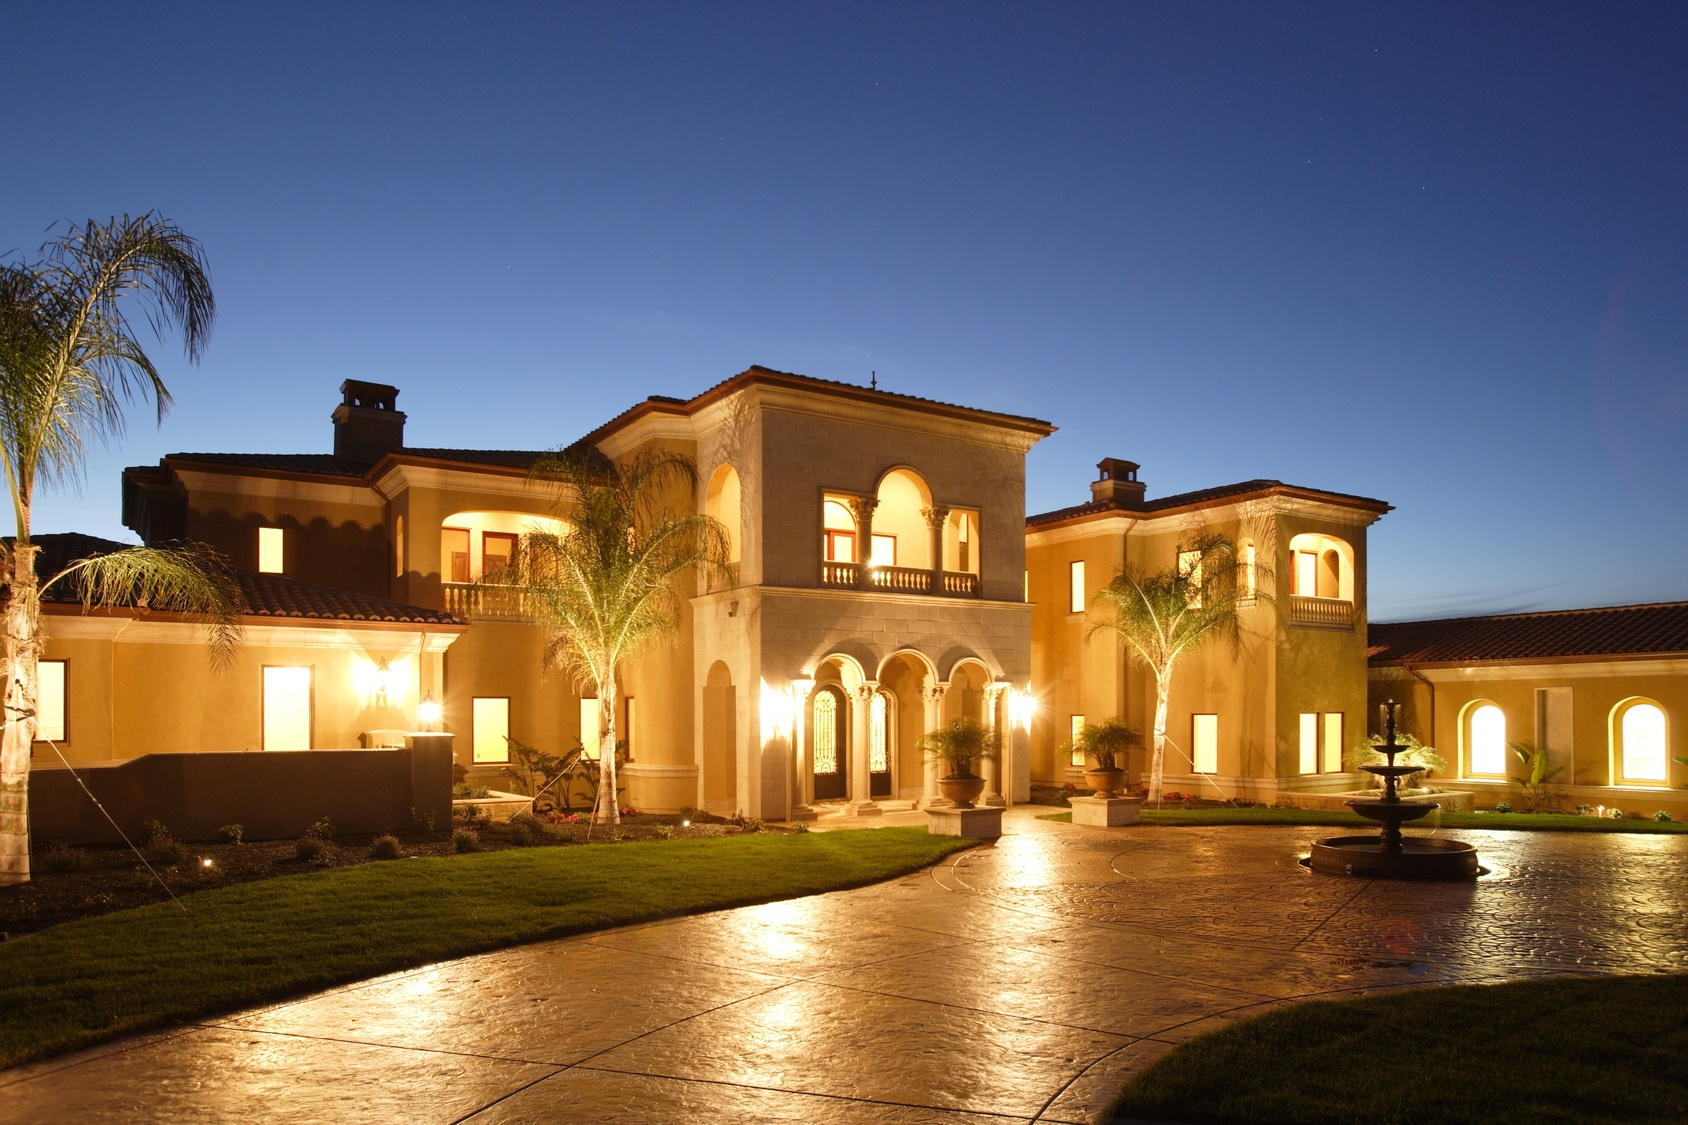 Orlando Area Home Styles Mediterranean Villas To High Rise Condos Victorian To Tudor Homes